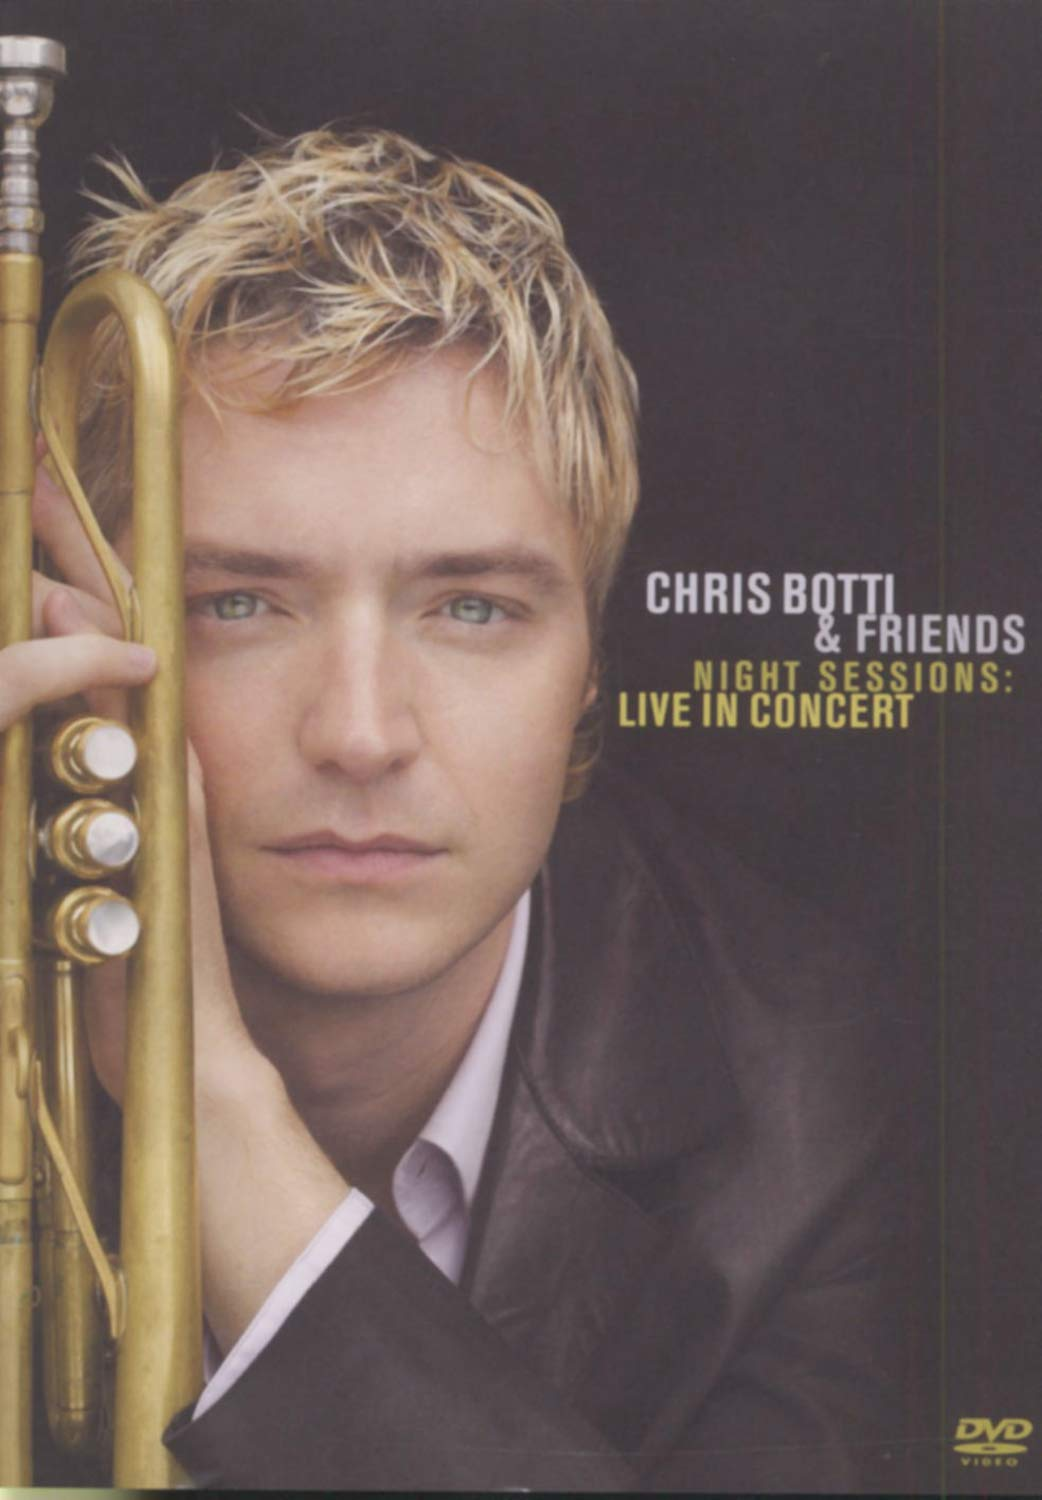 Chris Botti & Friends: Night Sessions - Live in Concert by Sony